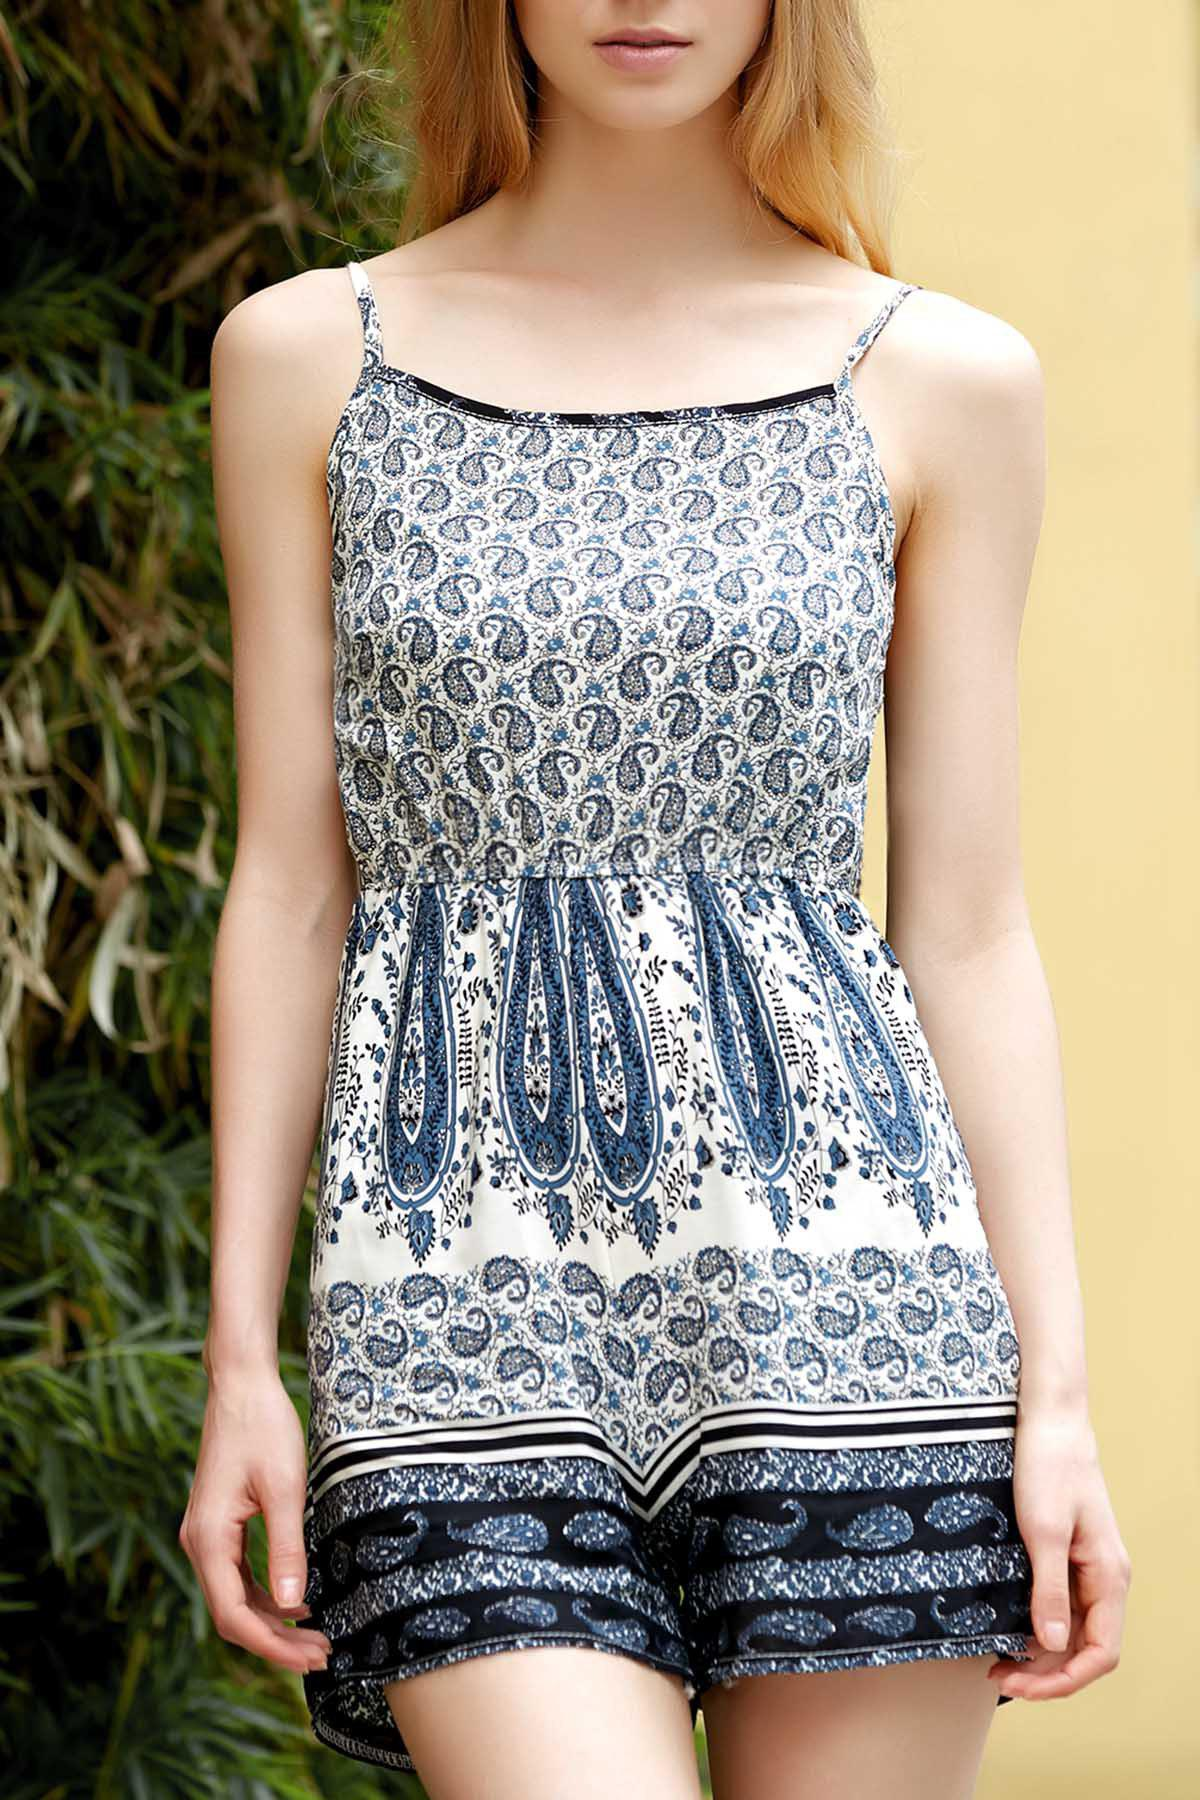 Stylish Spaghetti Straps Printed Backless Romper For Women - COLORMIX S